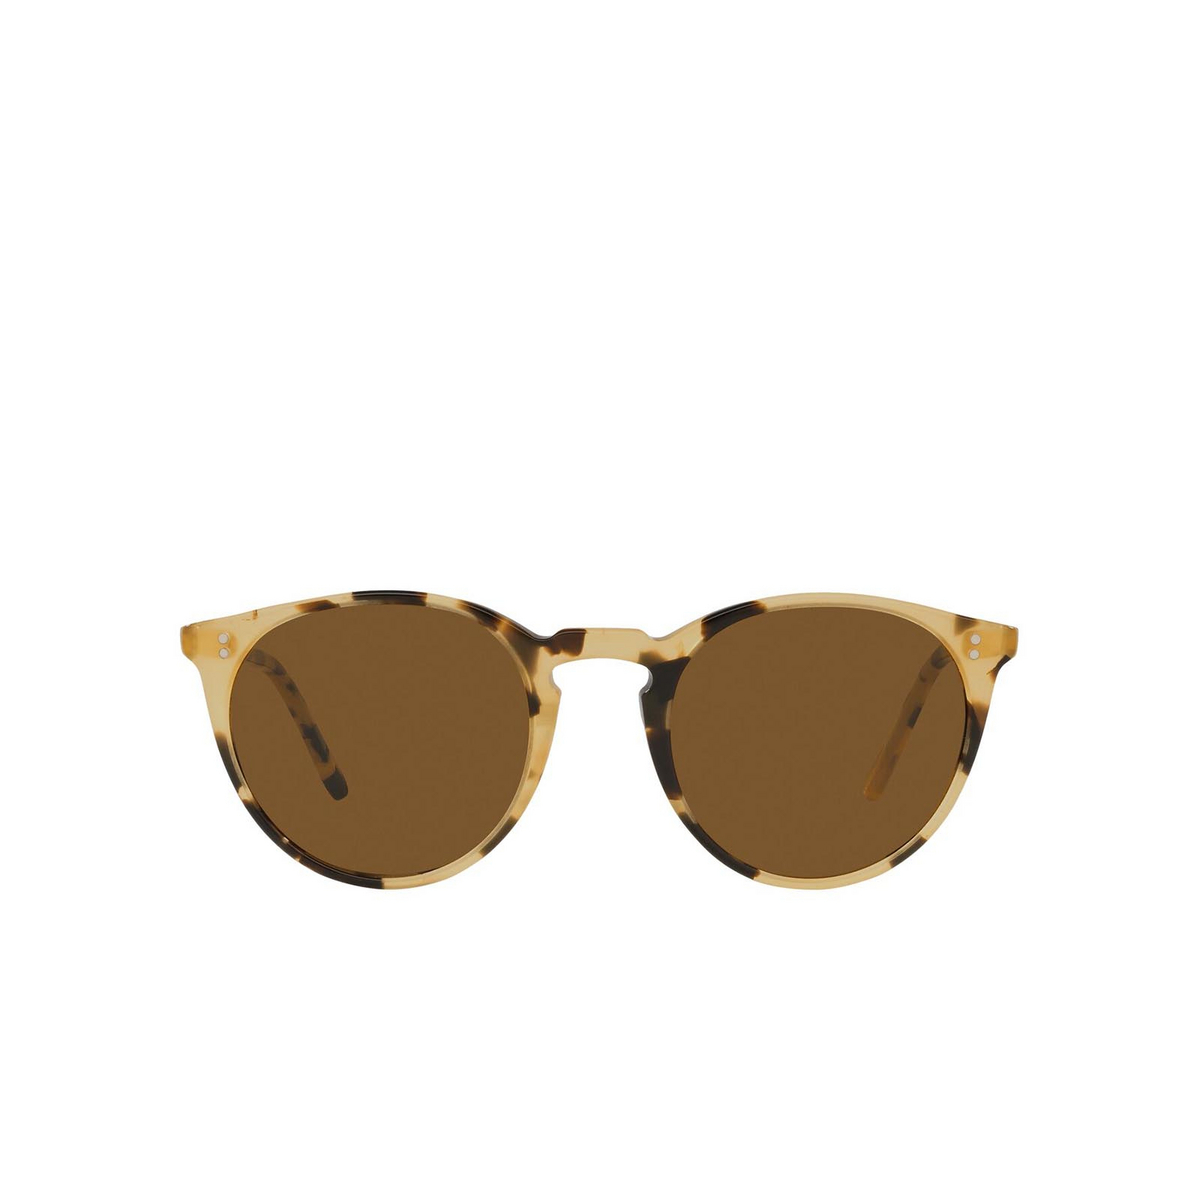 Oliver Peoples® Round Sunglasses: O'malley Sun OV5183S color Ytb 170153 - front view.